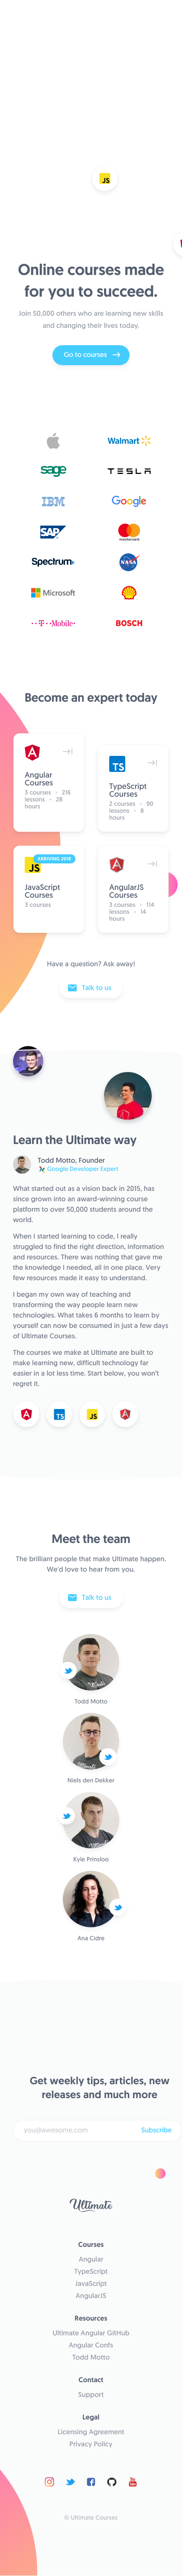 Example of Design for Jobs & Education, Education, Mobile Landing Page by ultimatecourses.com | Mobile Landing Page Design